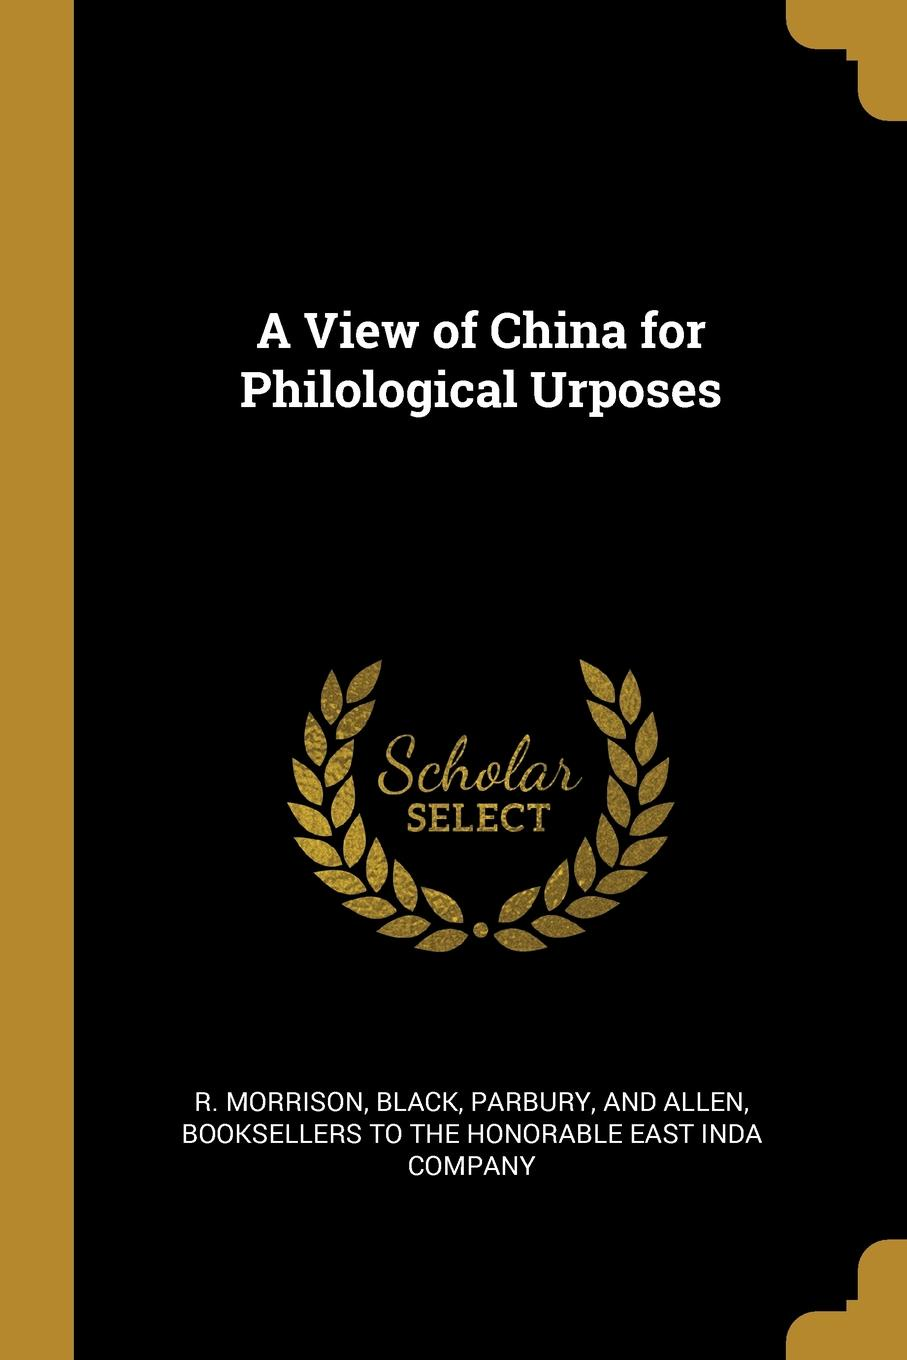 лучшая цена R. Morrison A View of China for Philological Urposes